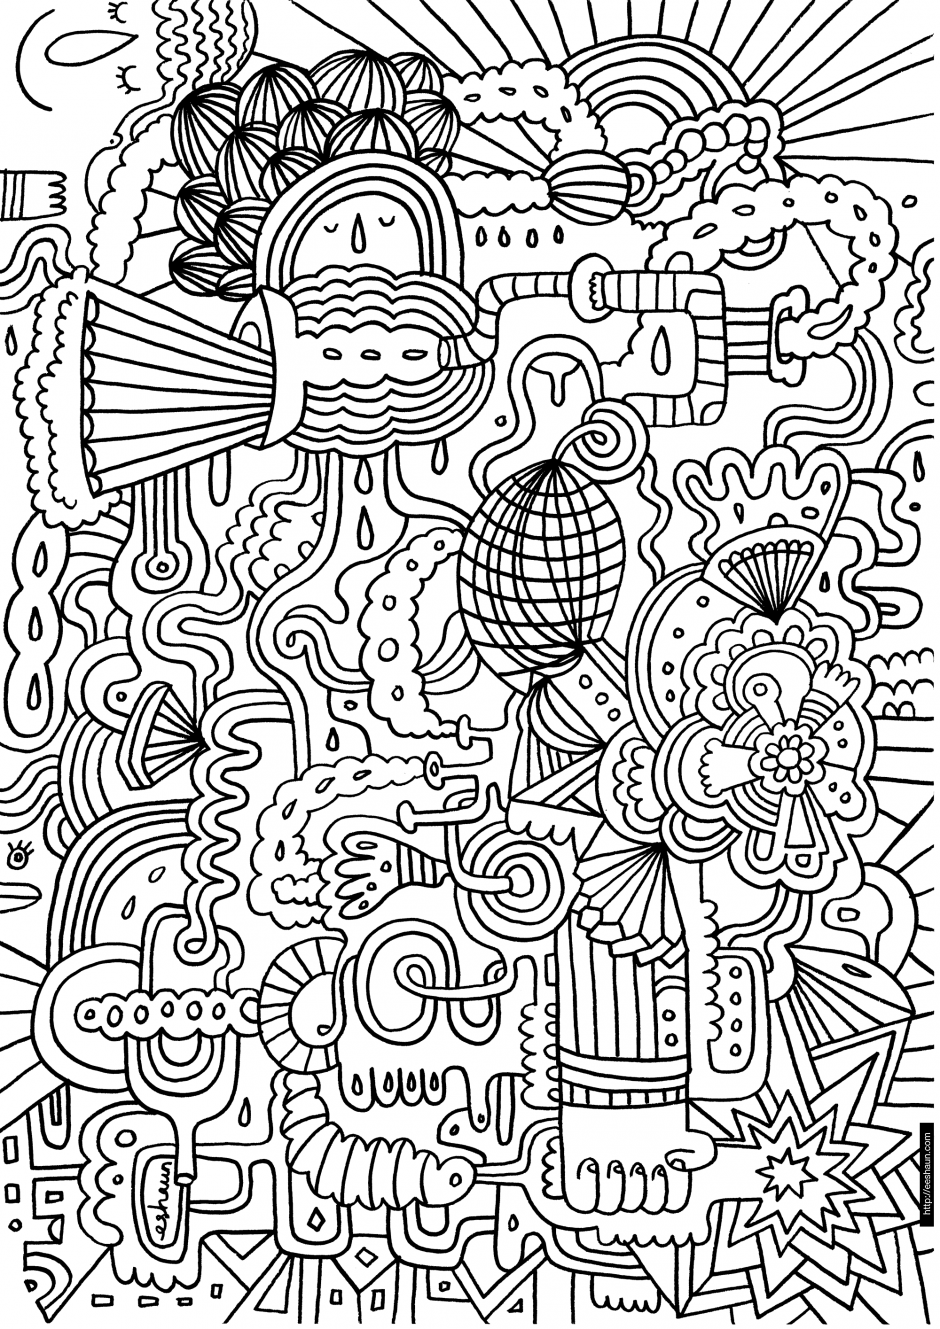 Colouring sheets hard - Coloring Pages Of Flowers For Teenagers Difficult Only Coloring Pages